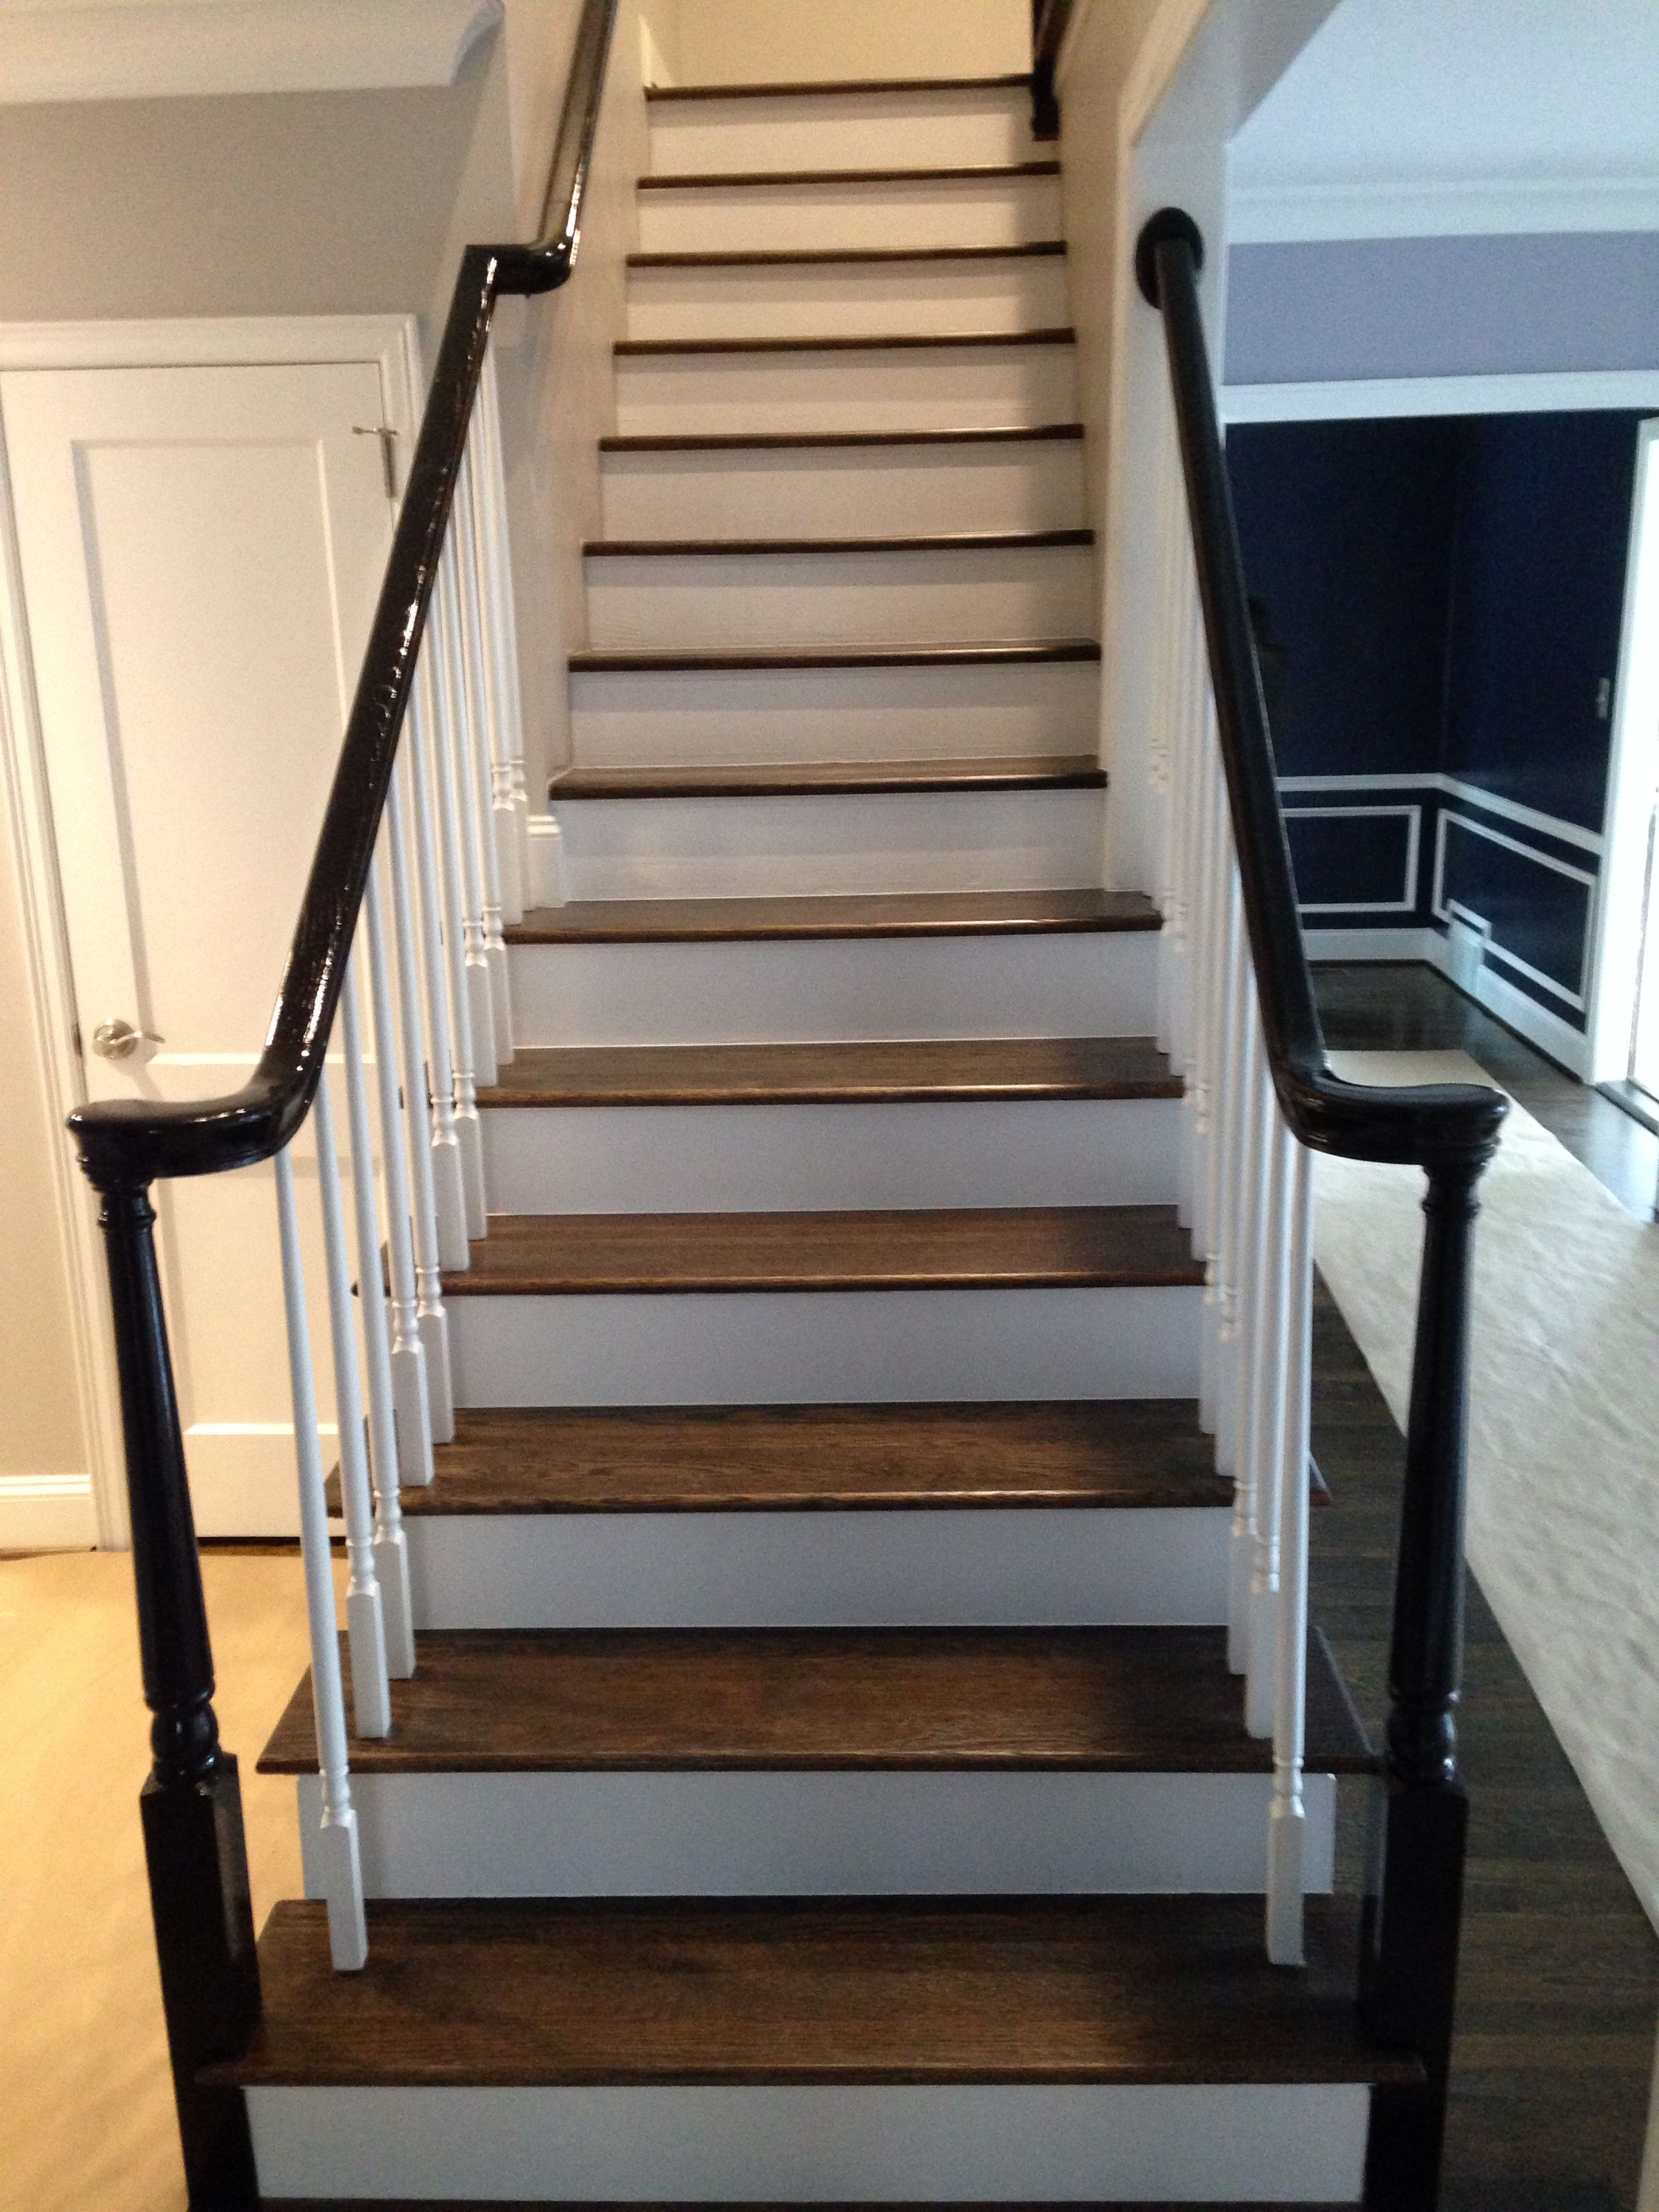 Best Hardwood Stairs With White Risers Hardwood Stairs White Stair Risers Stairs 400 x 300